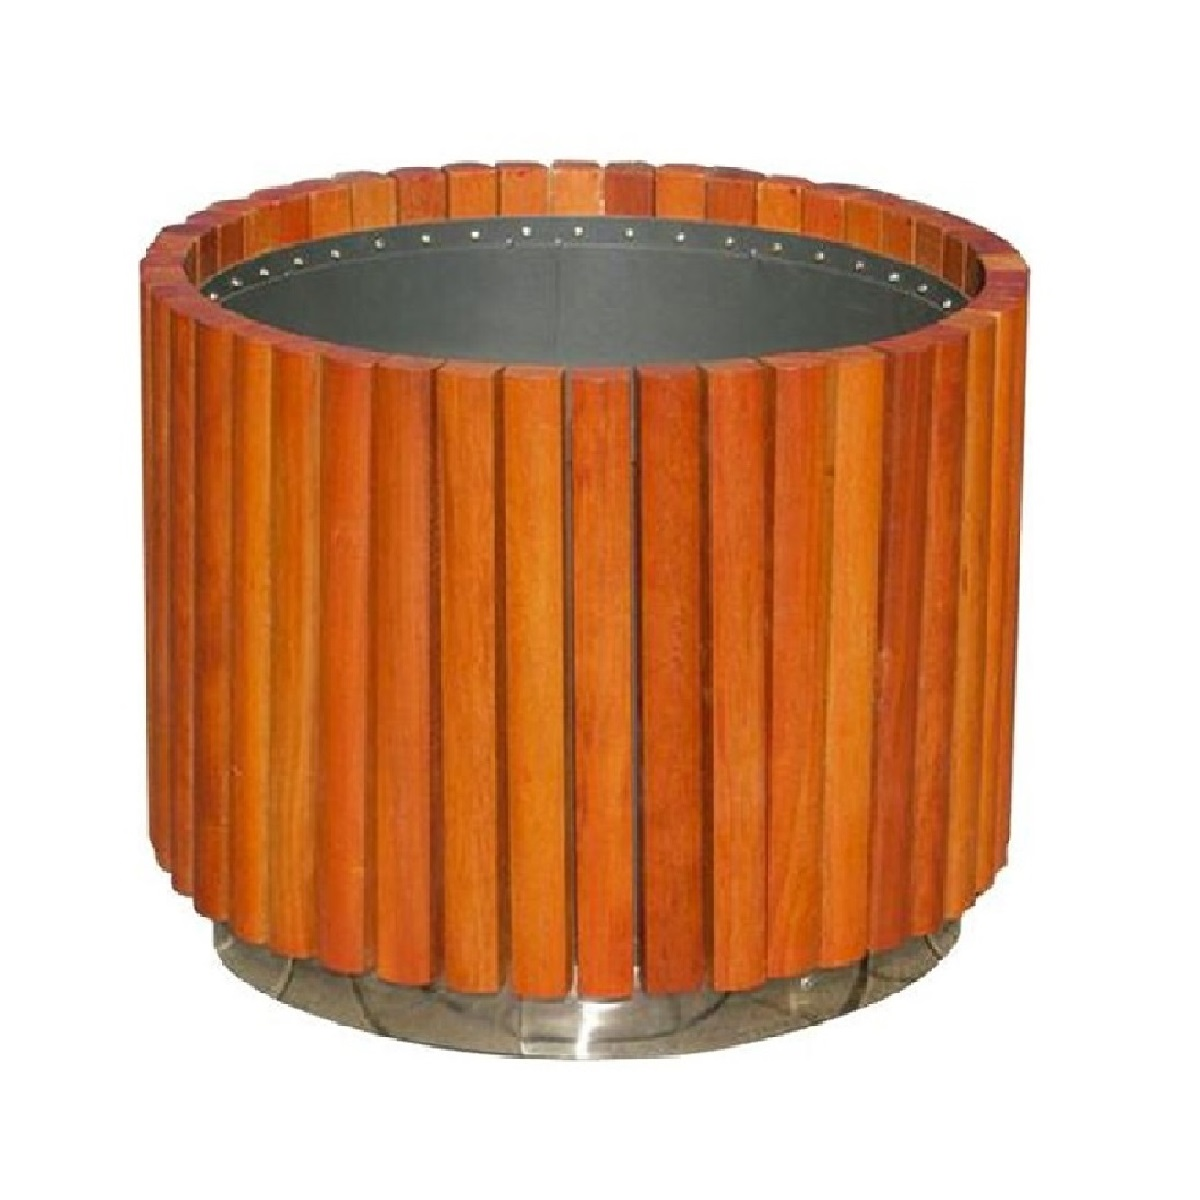 Circular flower box with strips of wood newport J-9